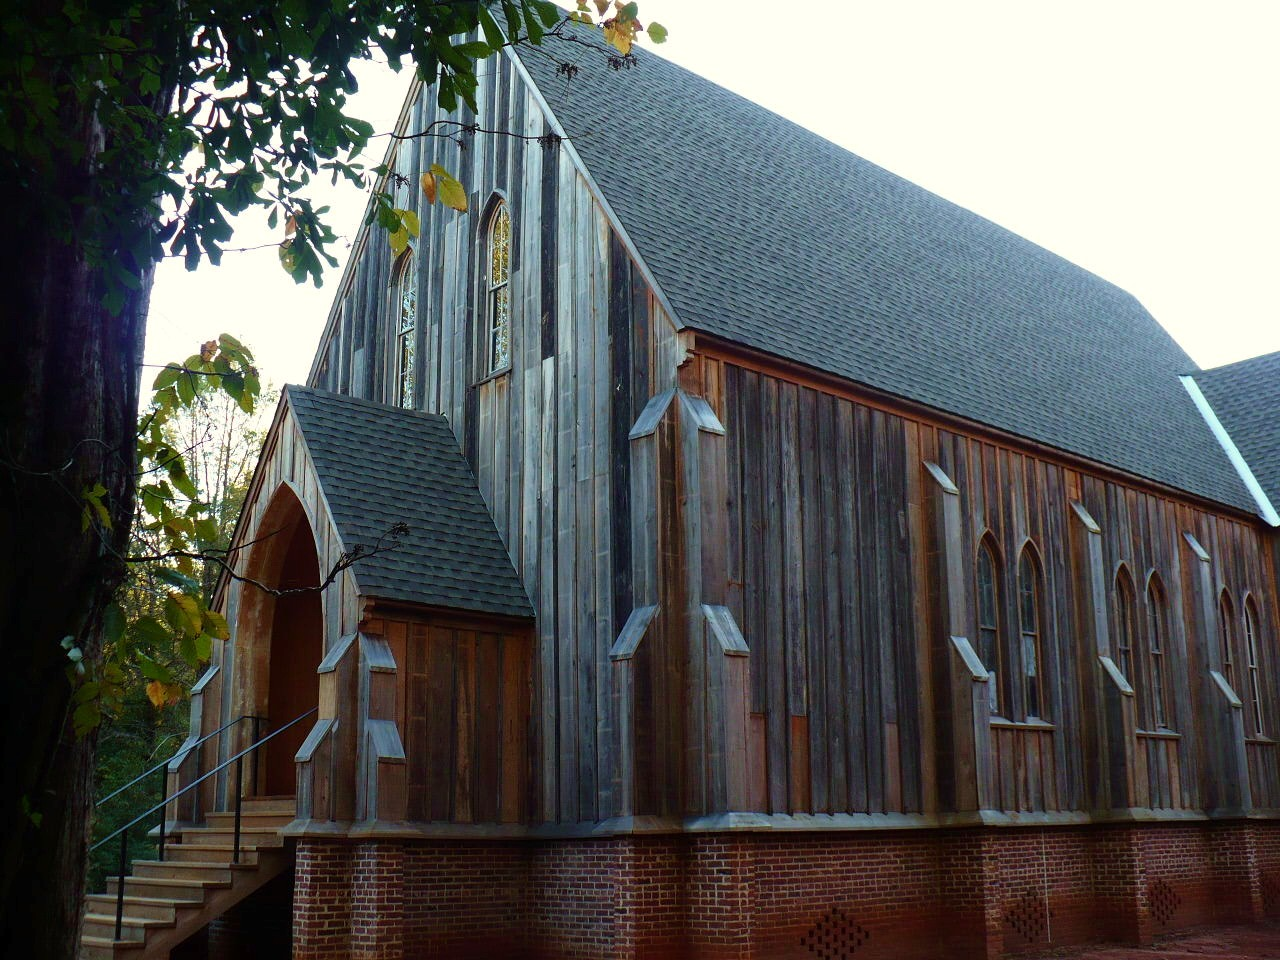 St. Luke's Episcopal Church, built in 1854. It was moved to Martin's Station in 1878 but returned to Cahawba in 2007.